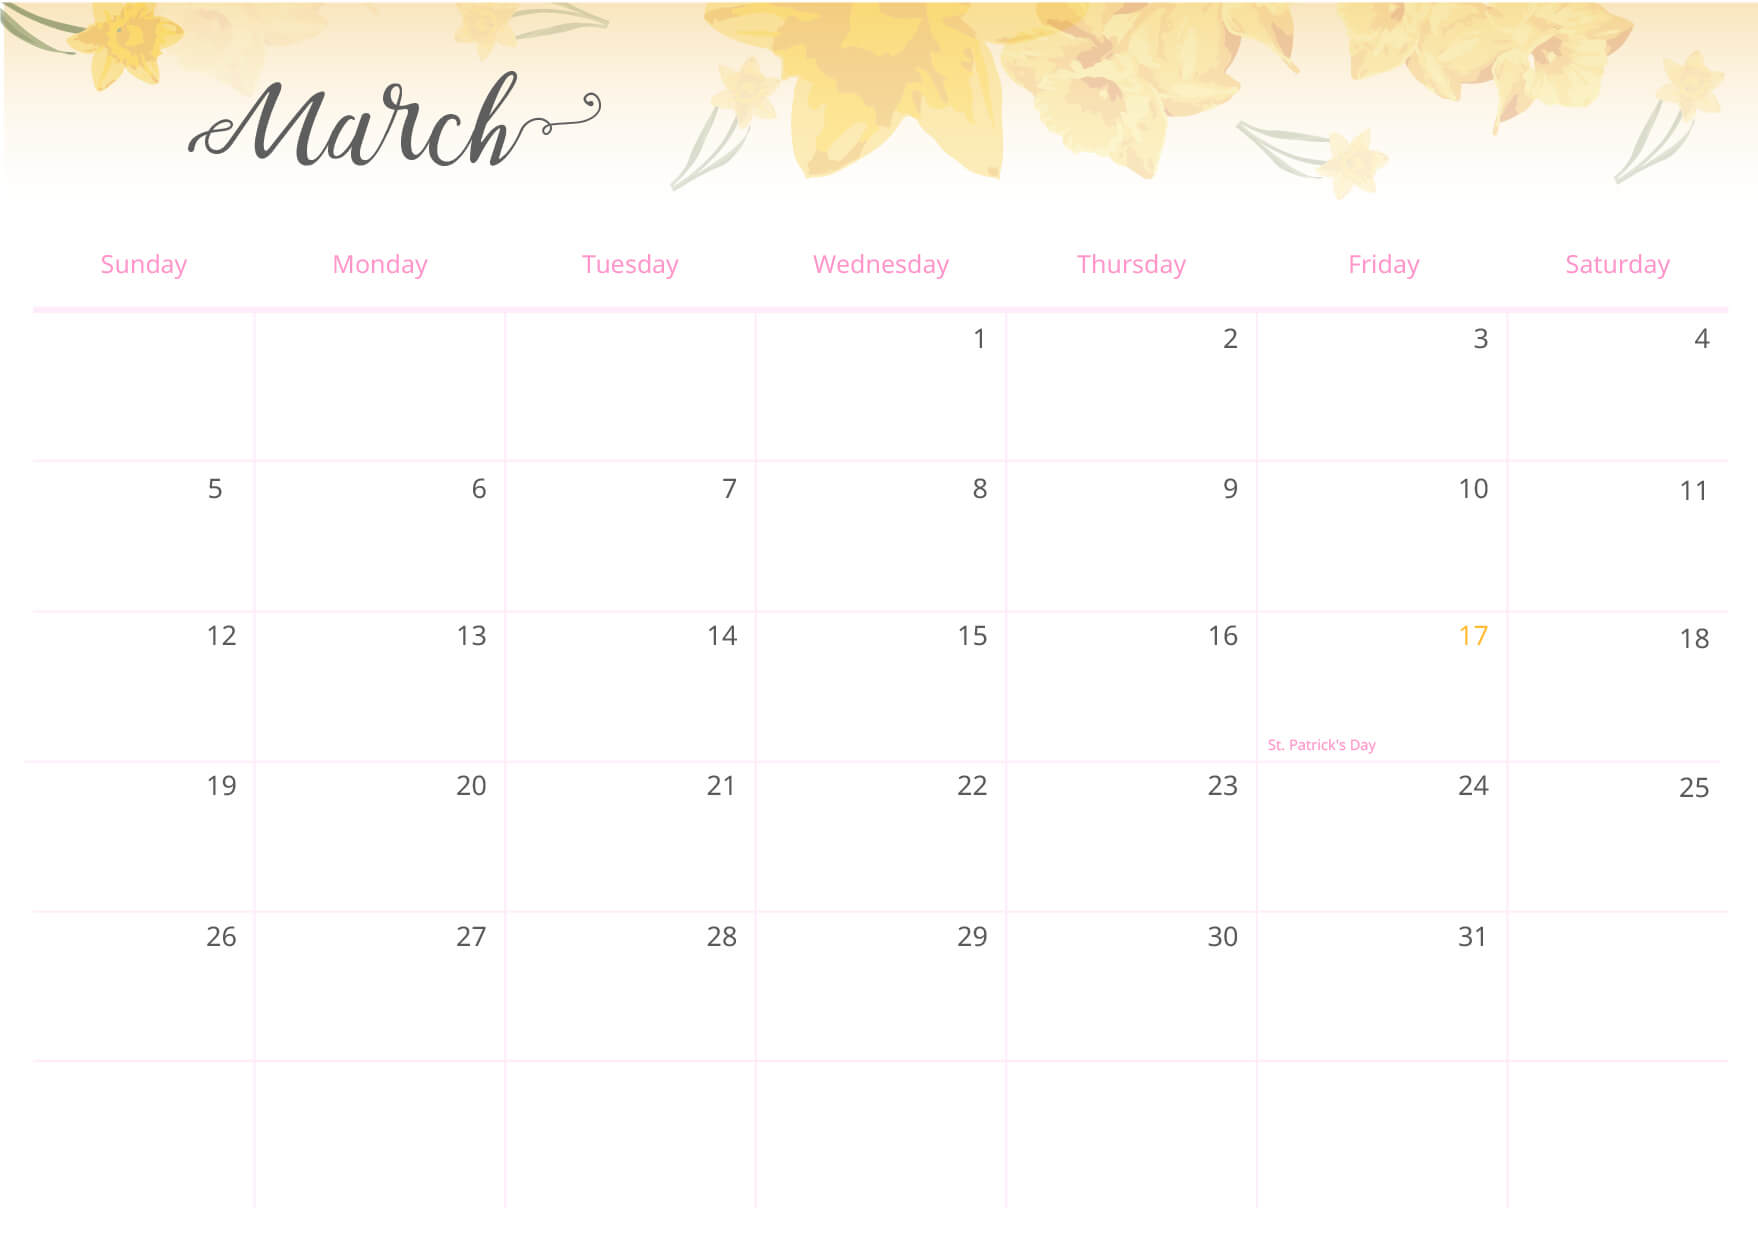 With a visual set-up, it's much easier to remember important dates.